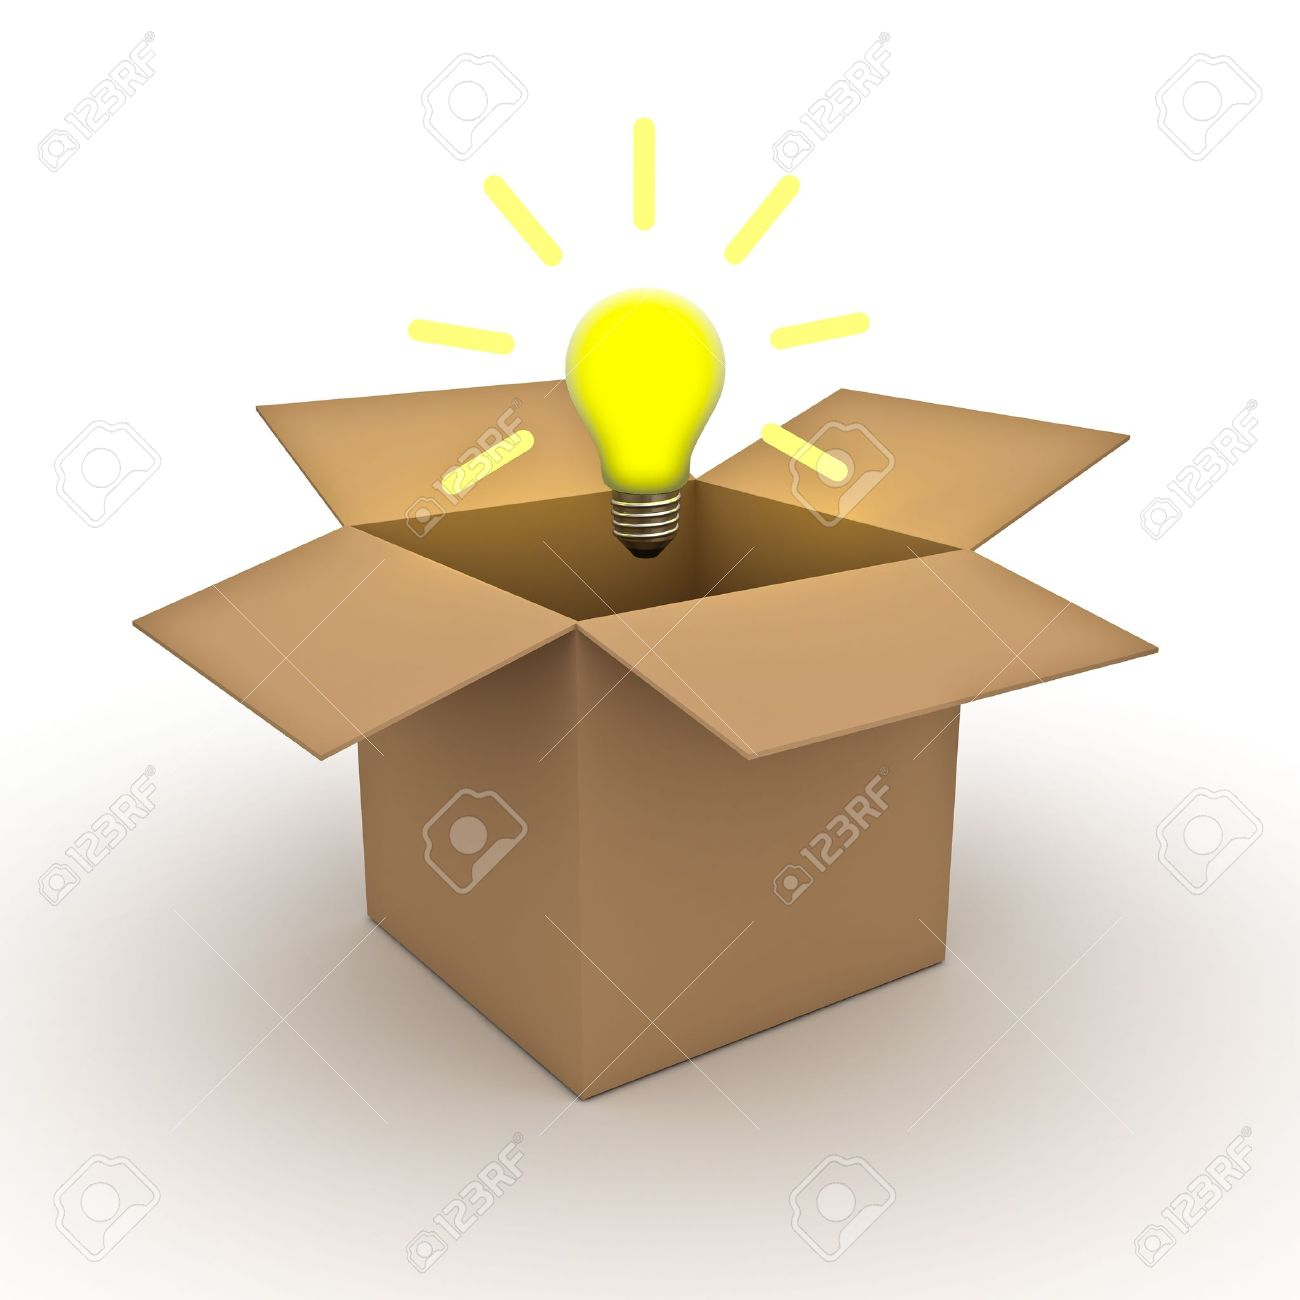 Think out of the box concept, idea light bulb above opened cardboard box isolated on white background Stock Photo - 12432460